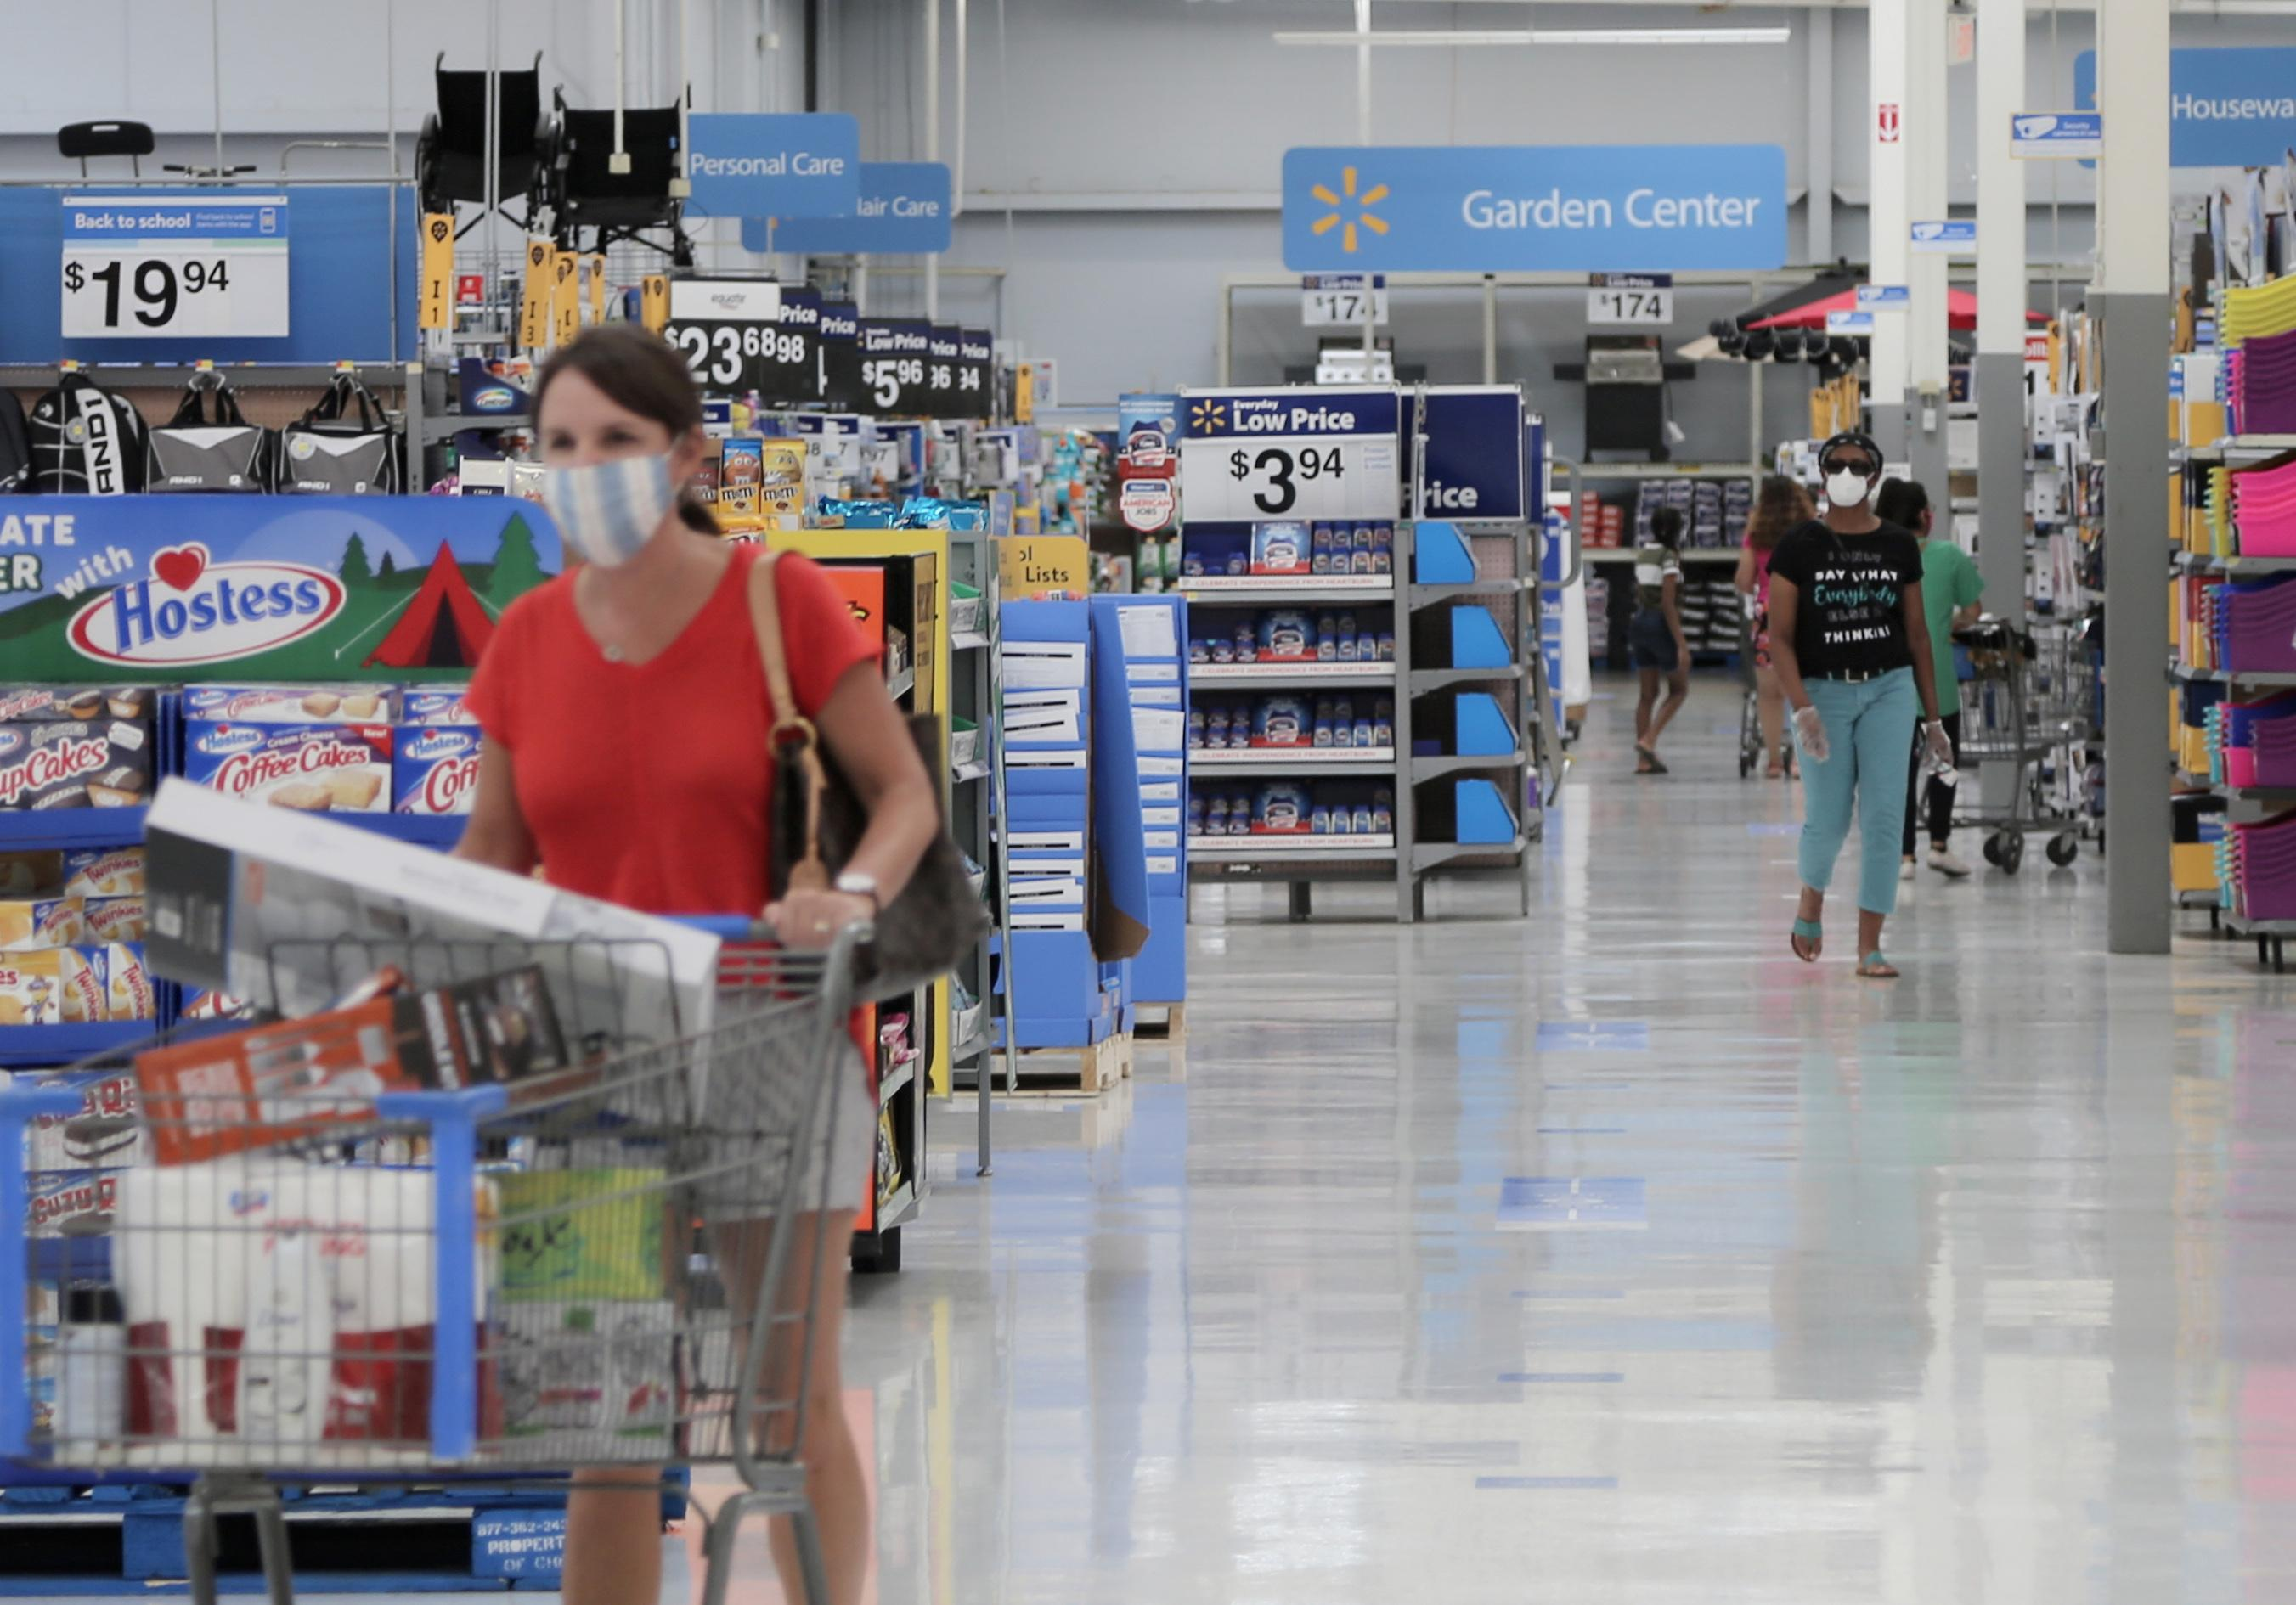 The interior of a Walmart store with a customer pushing a shopping cart down the aisle.